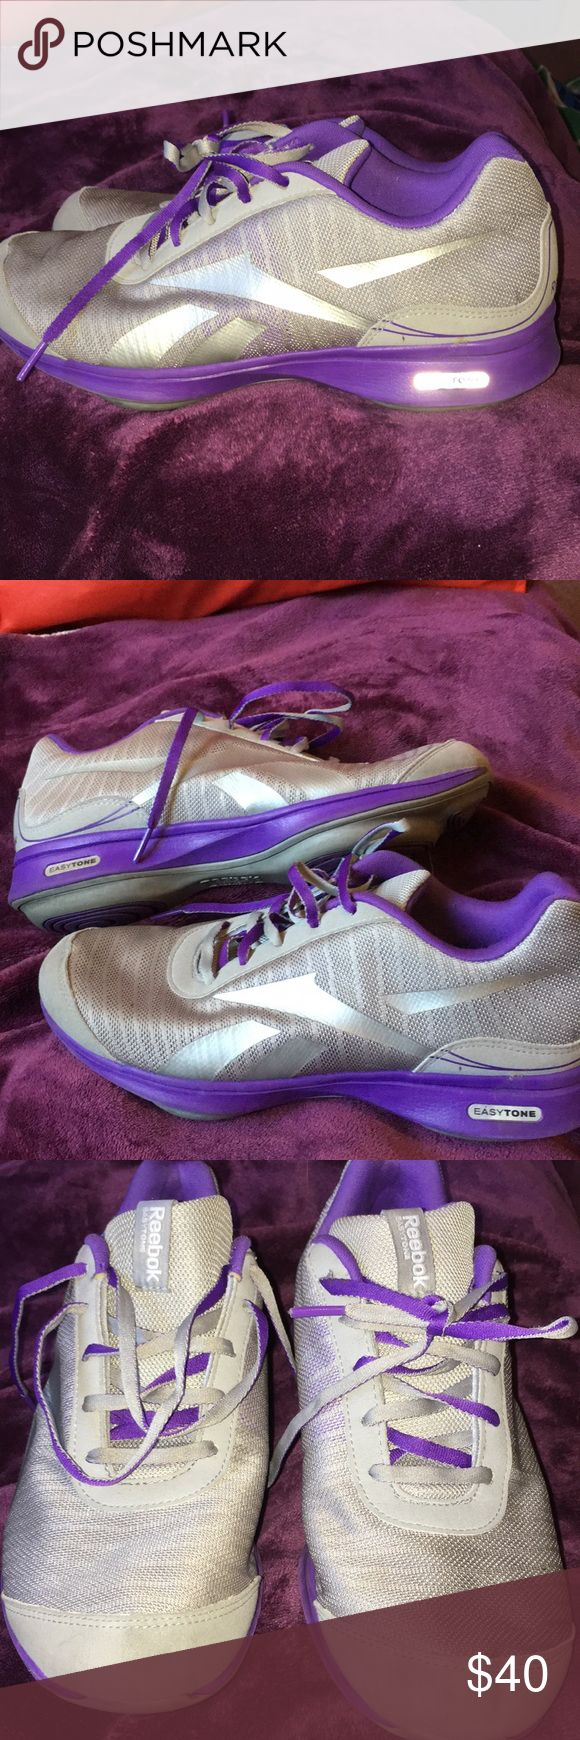 REEBOK Athletic shoes Used / Good condition #EasyTone athletic shoes Reebok Shoes Athletic Shoes